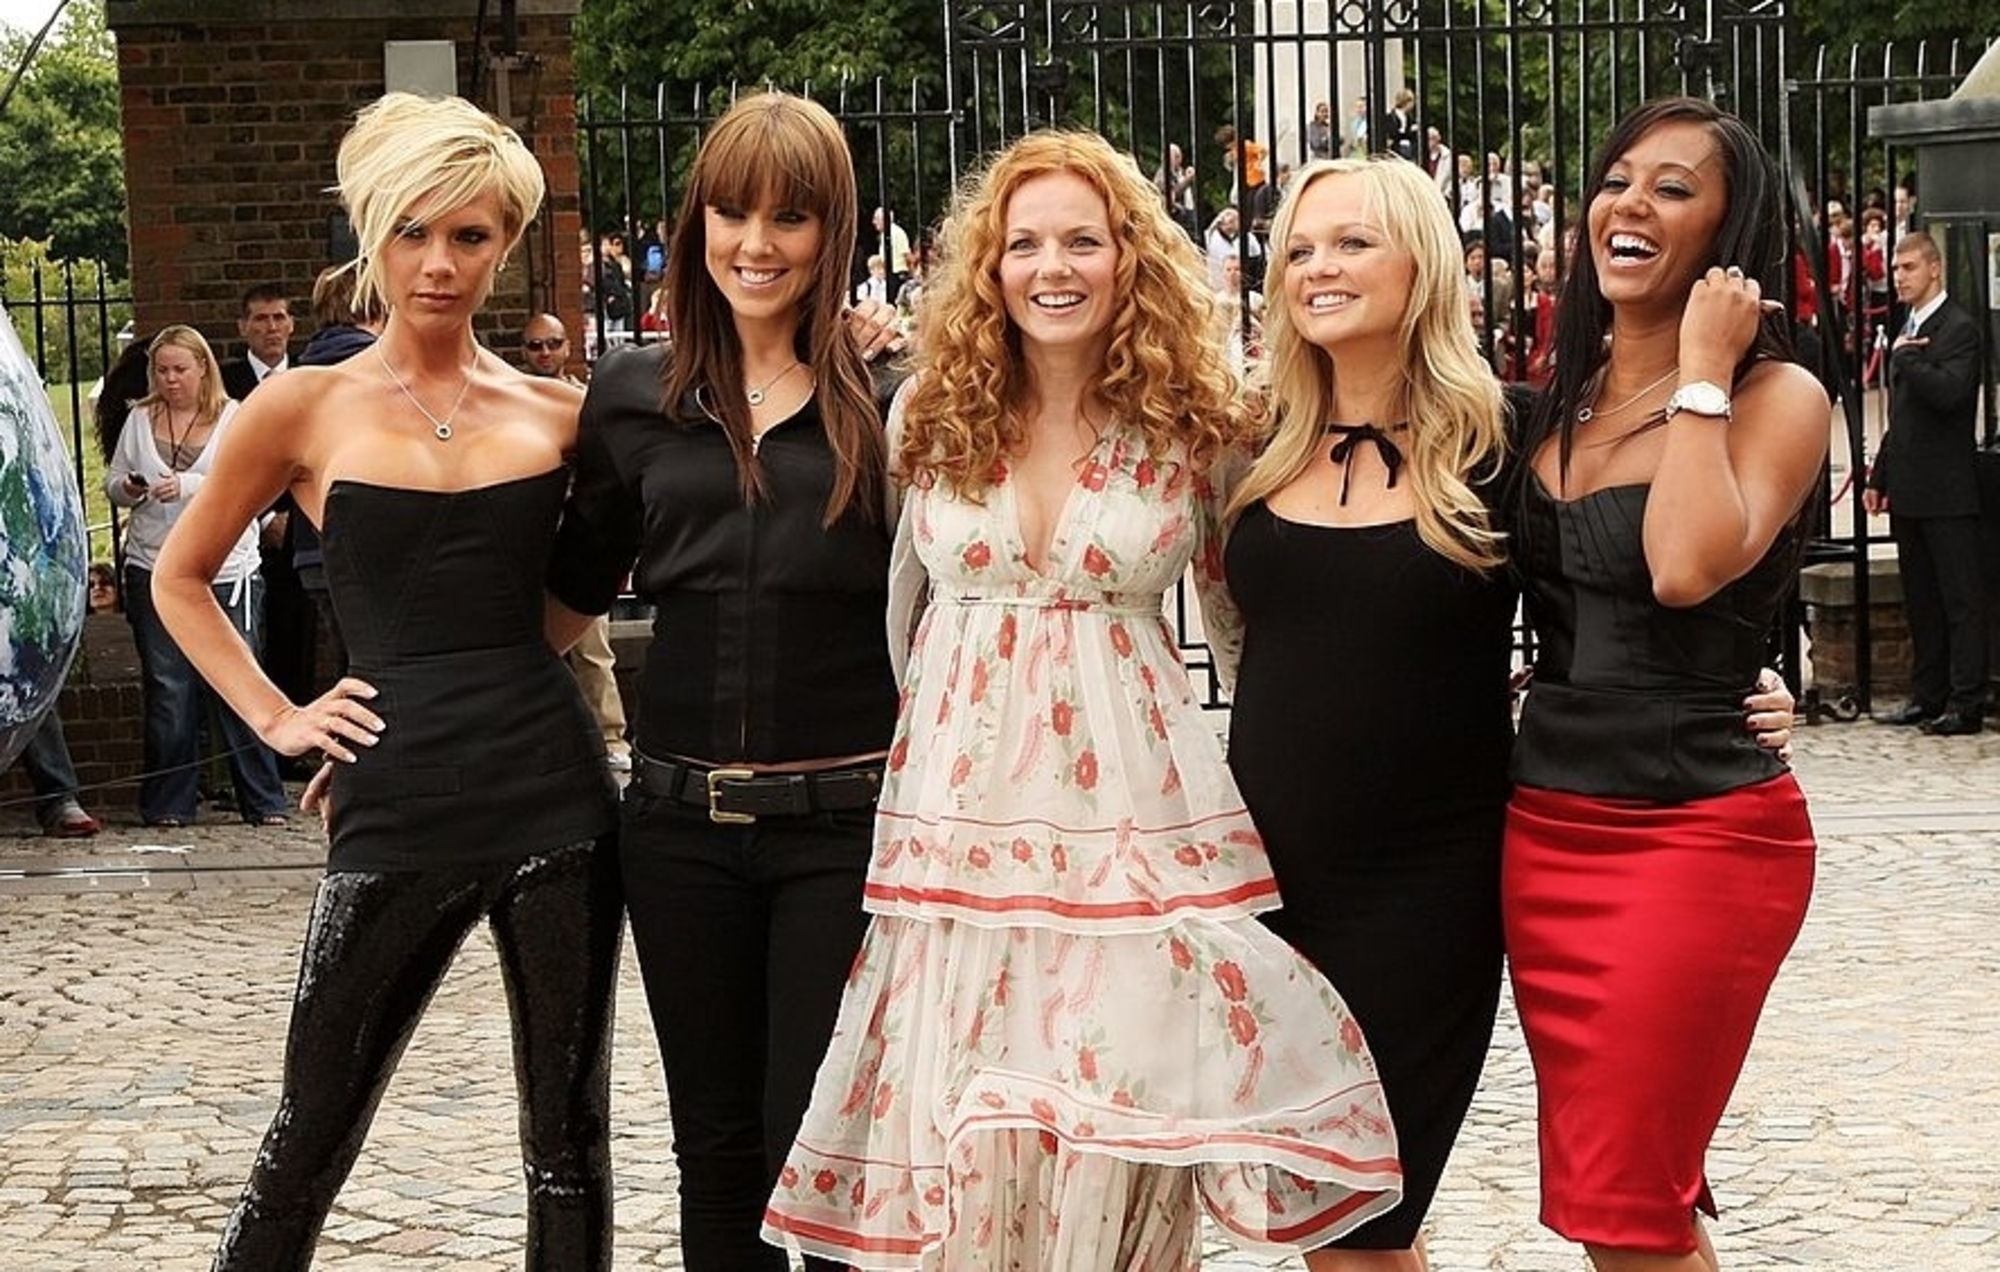 Spice Girls reportedly set to film sequel to 'Spice World'